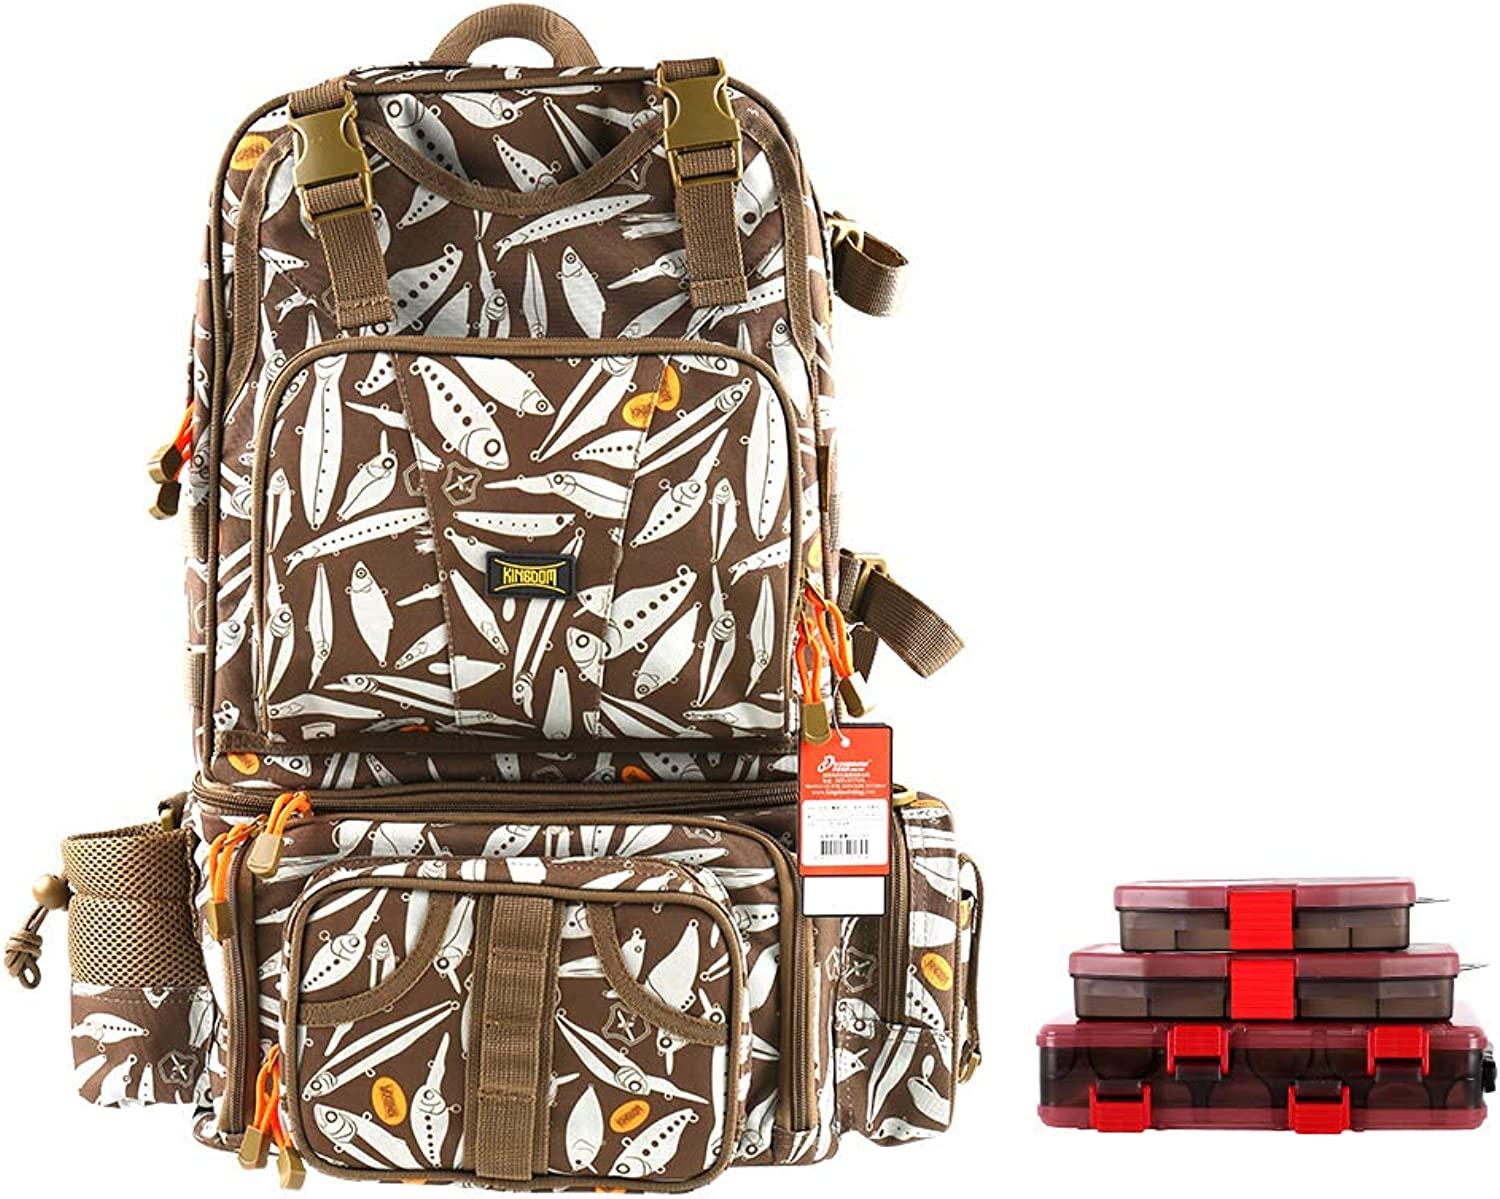 Kingdom Multifunctional Fishing Backpack, Waterproof Fishing Lure Tackle Bag with Detachable Combination and Gear Storage and Phone Bag